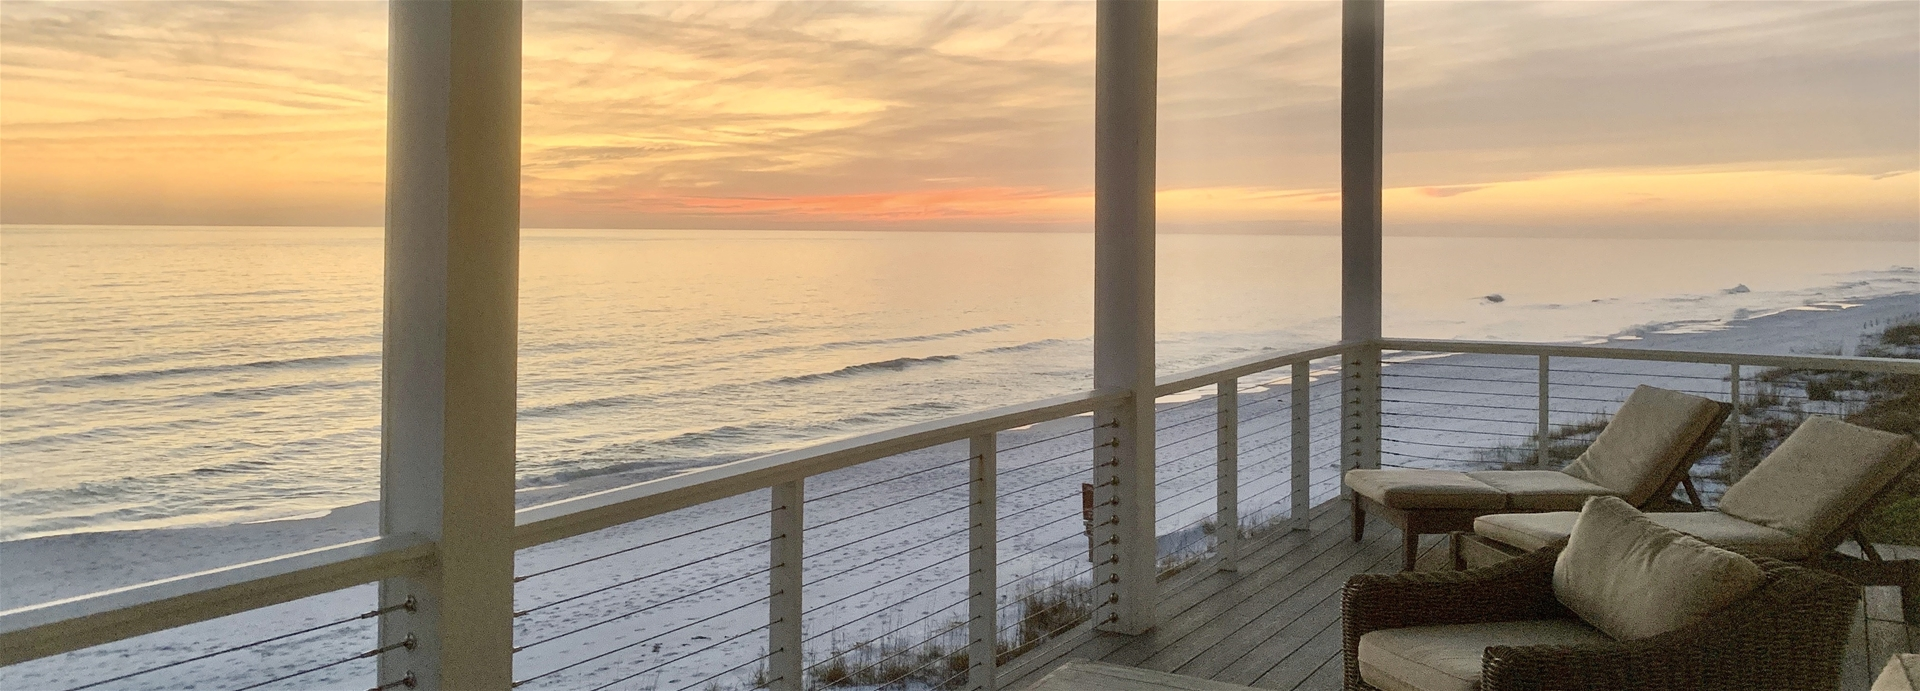 Rosemary Beach, 30a rentals, 30a beaches, 30a vacation rentals, 30a beach rentals